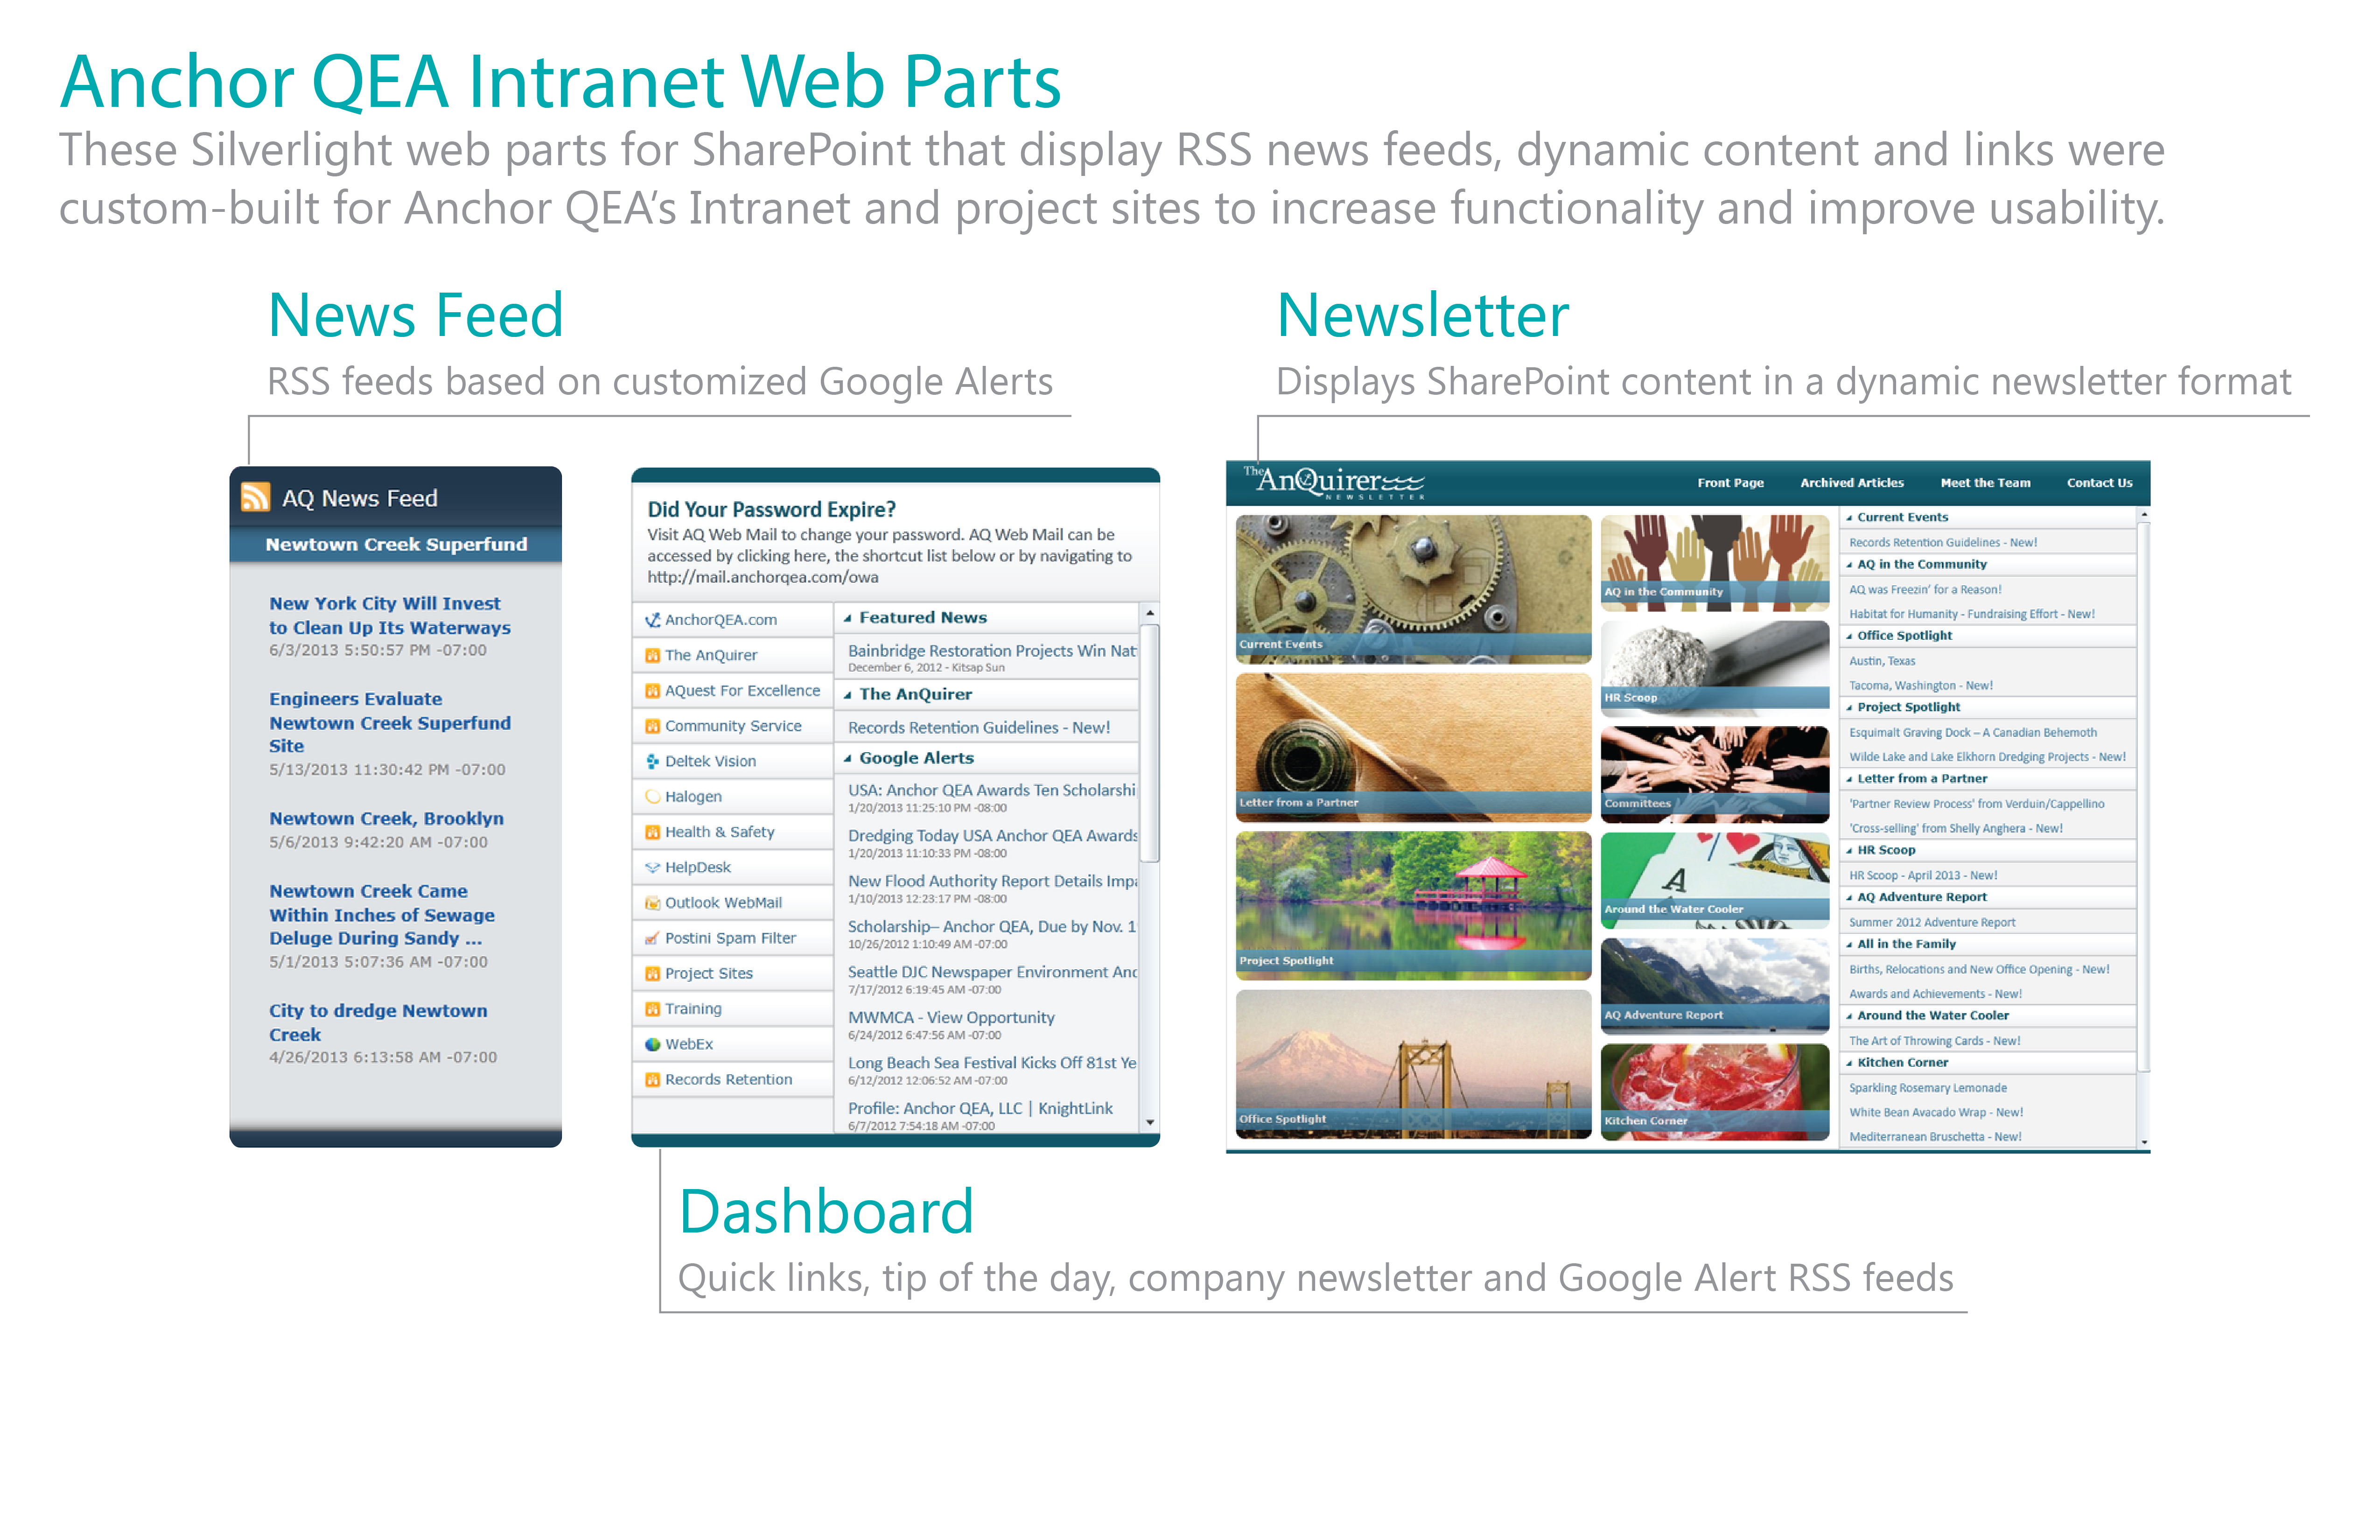 Anchor QEA Intranet Silverlight Web Parts